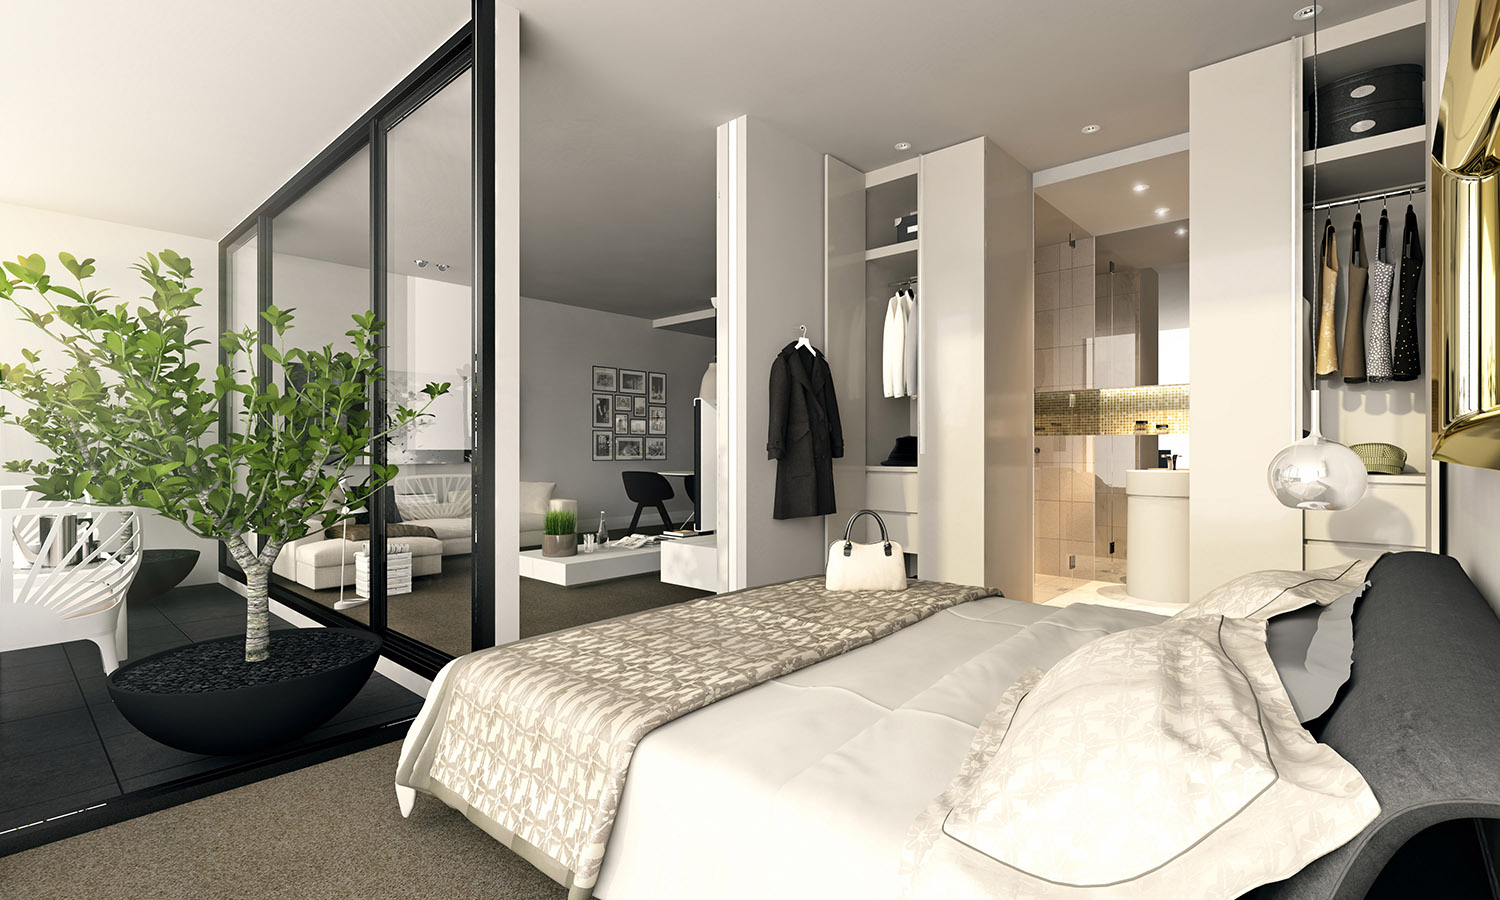 Studio apartment interiors inspiration for Bedroom inspiration